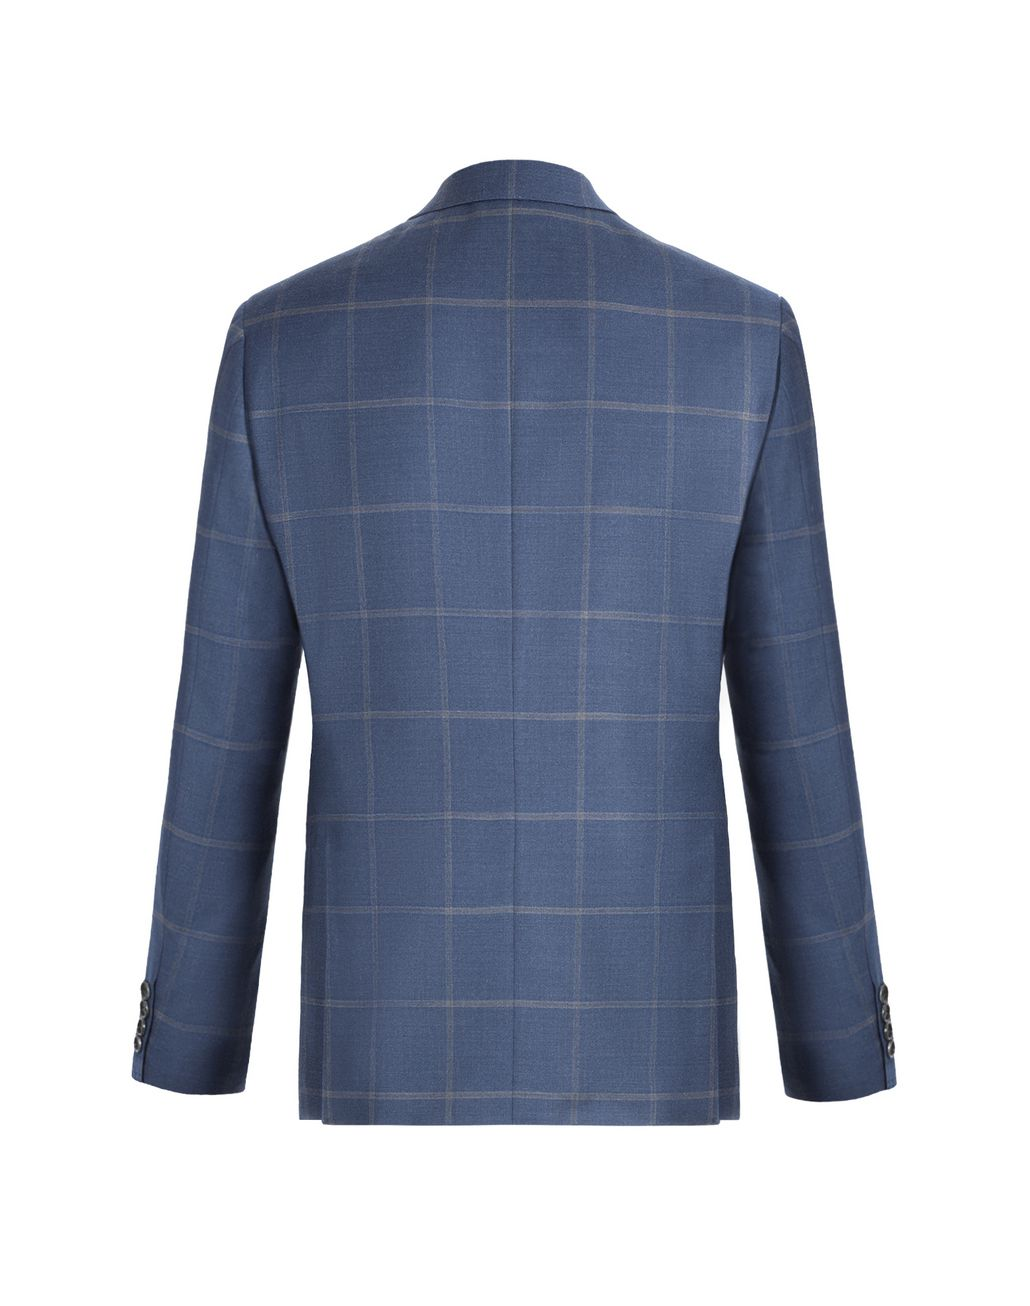 BRIONI Blue and Gray Overcheck Ravello Jacket Jackets Man d